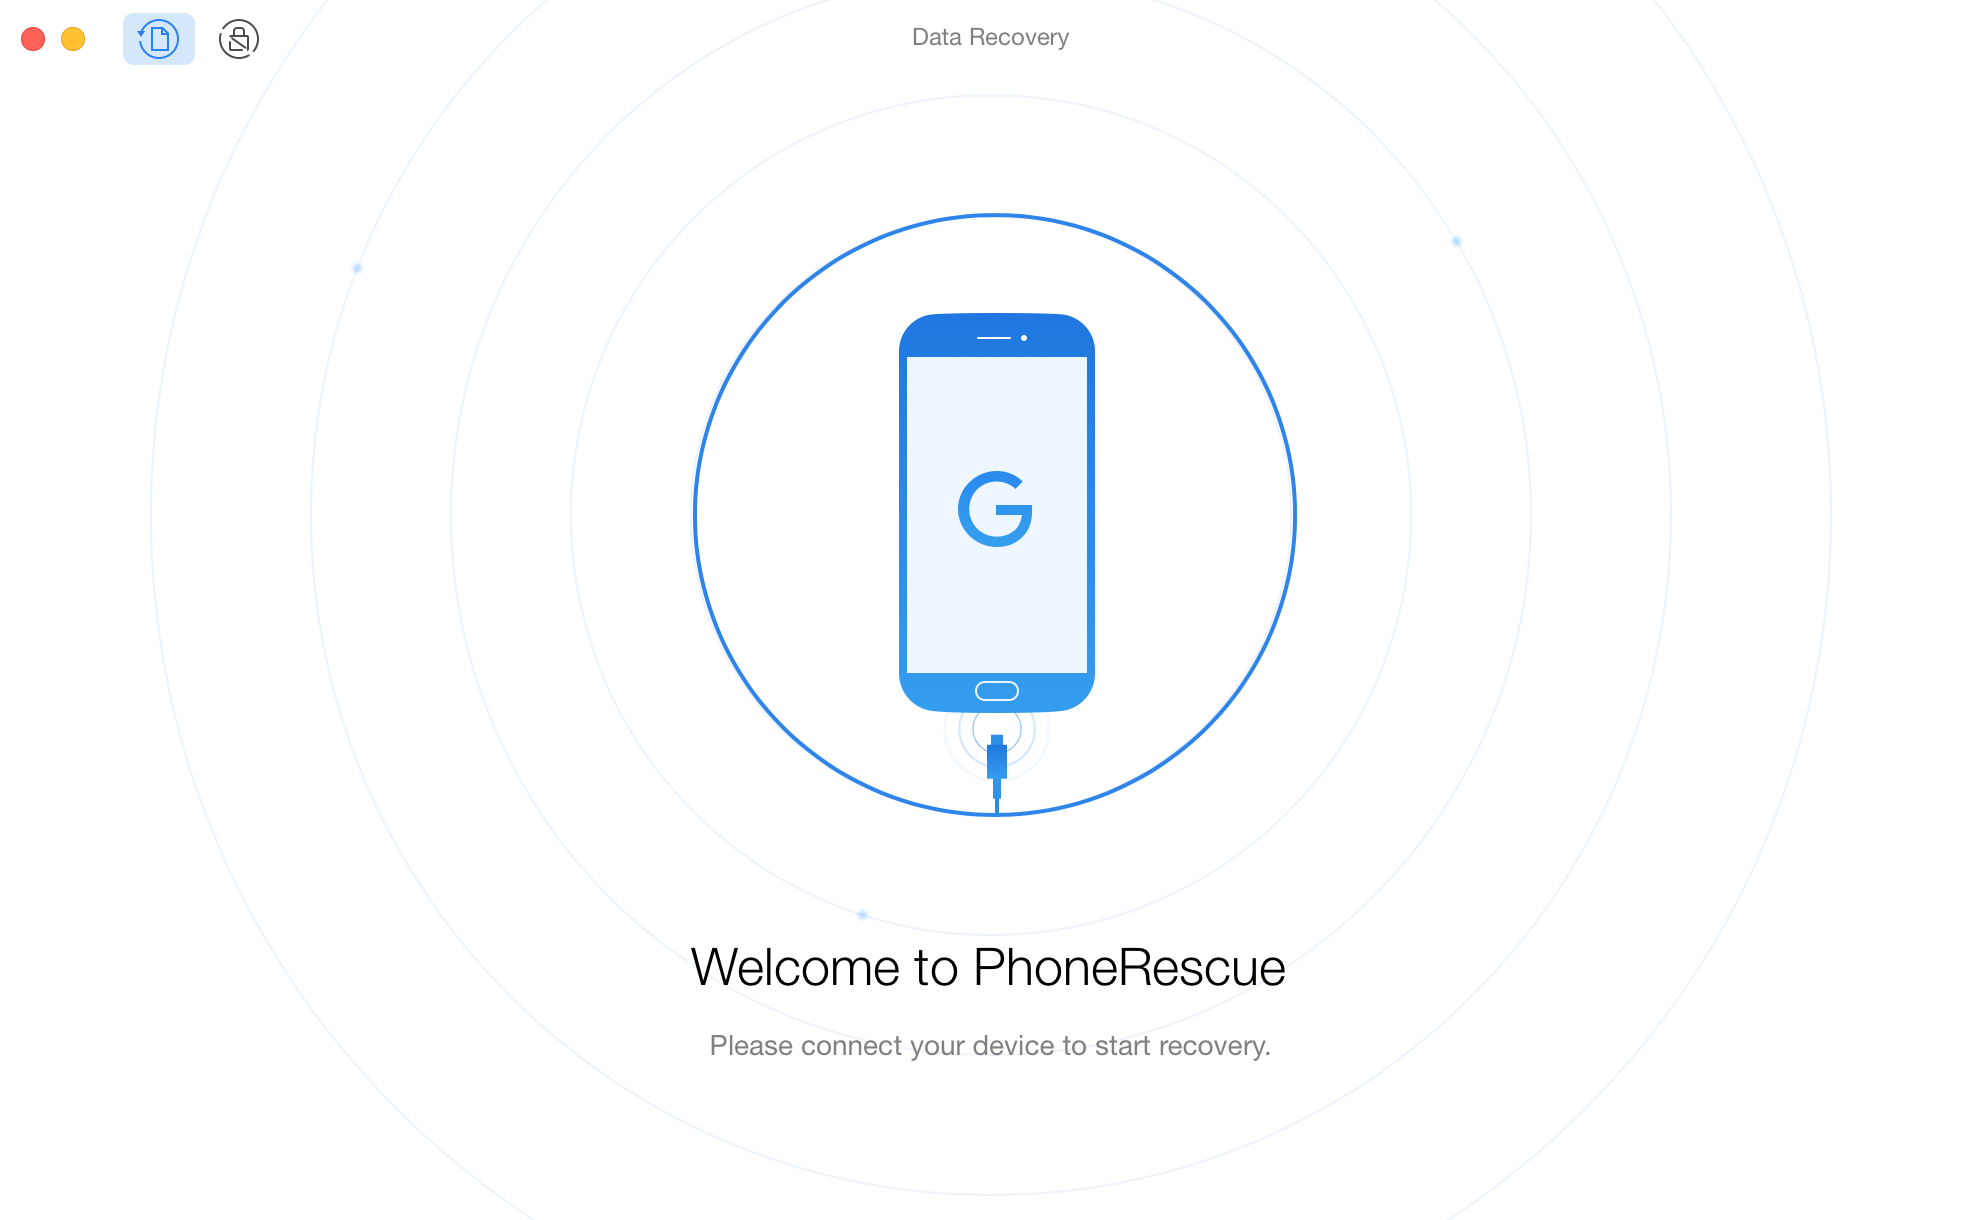 The welcome interface of PhoneRescue for Google